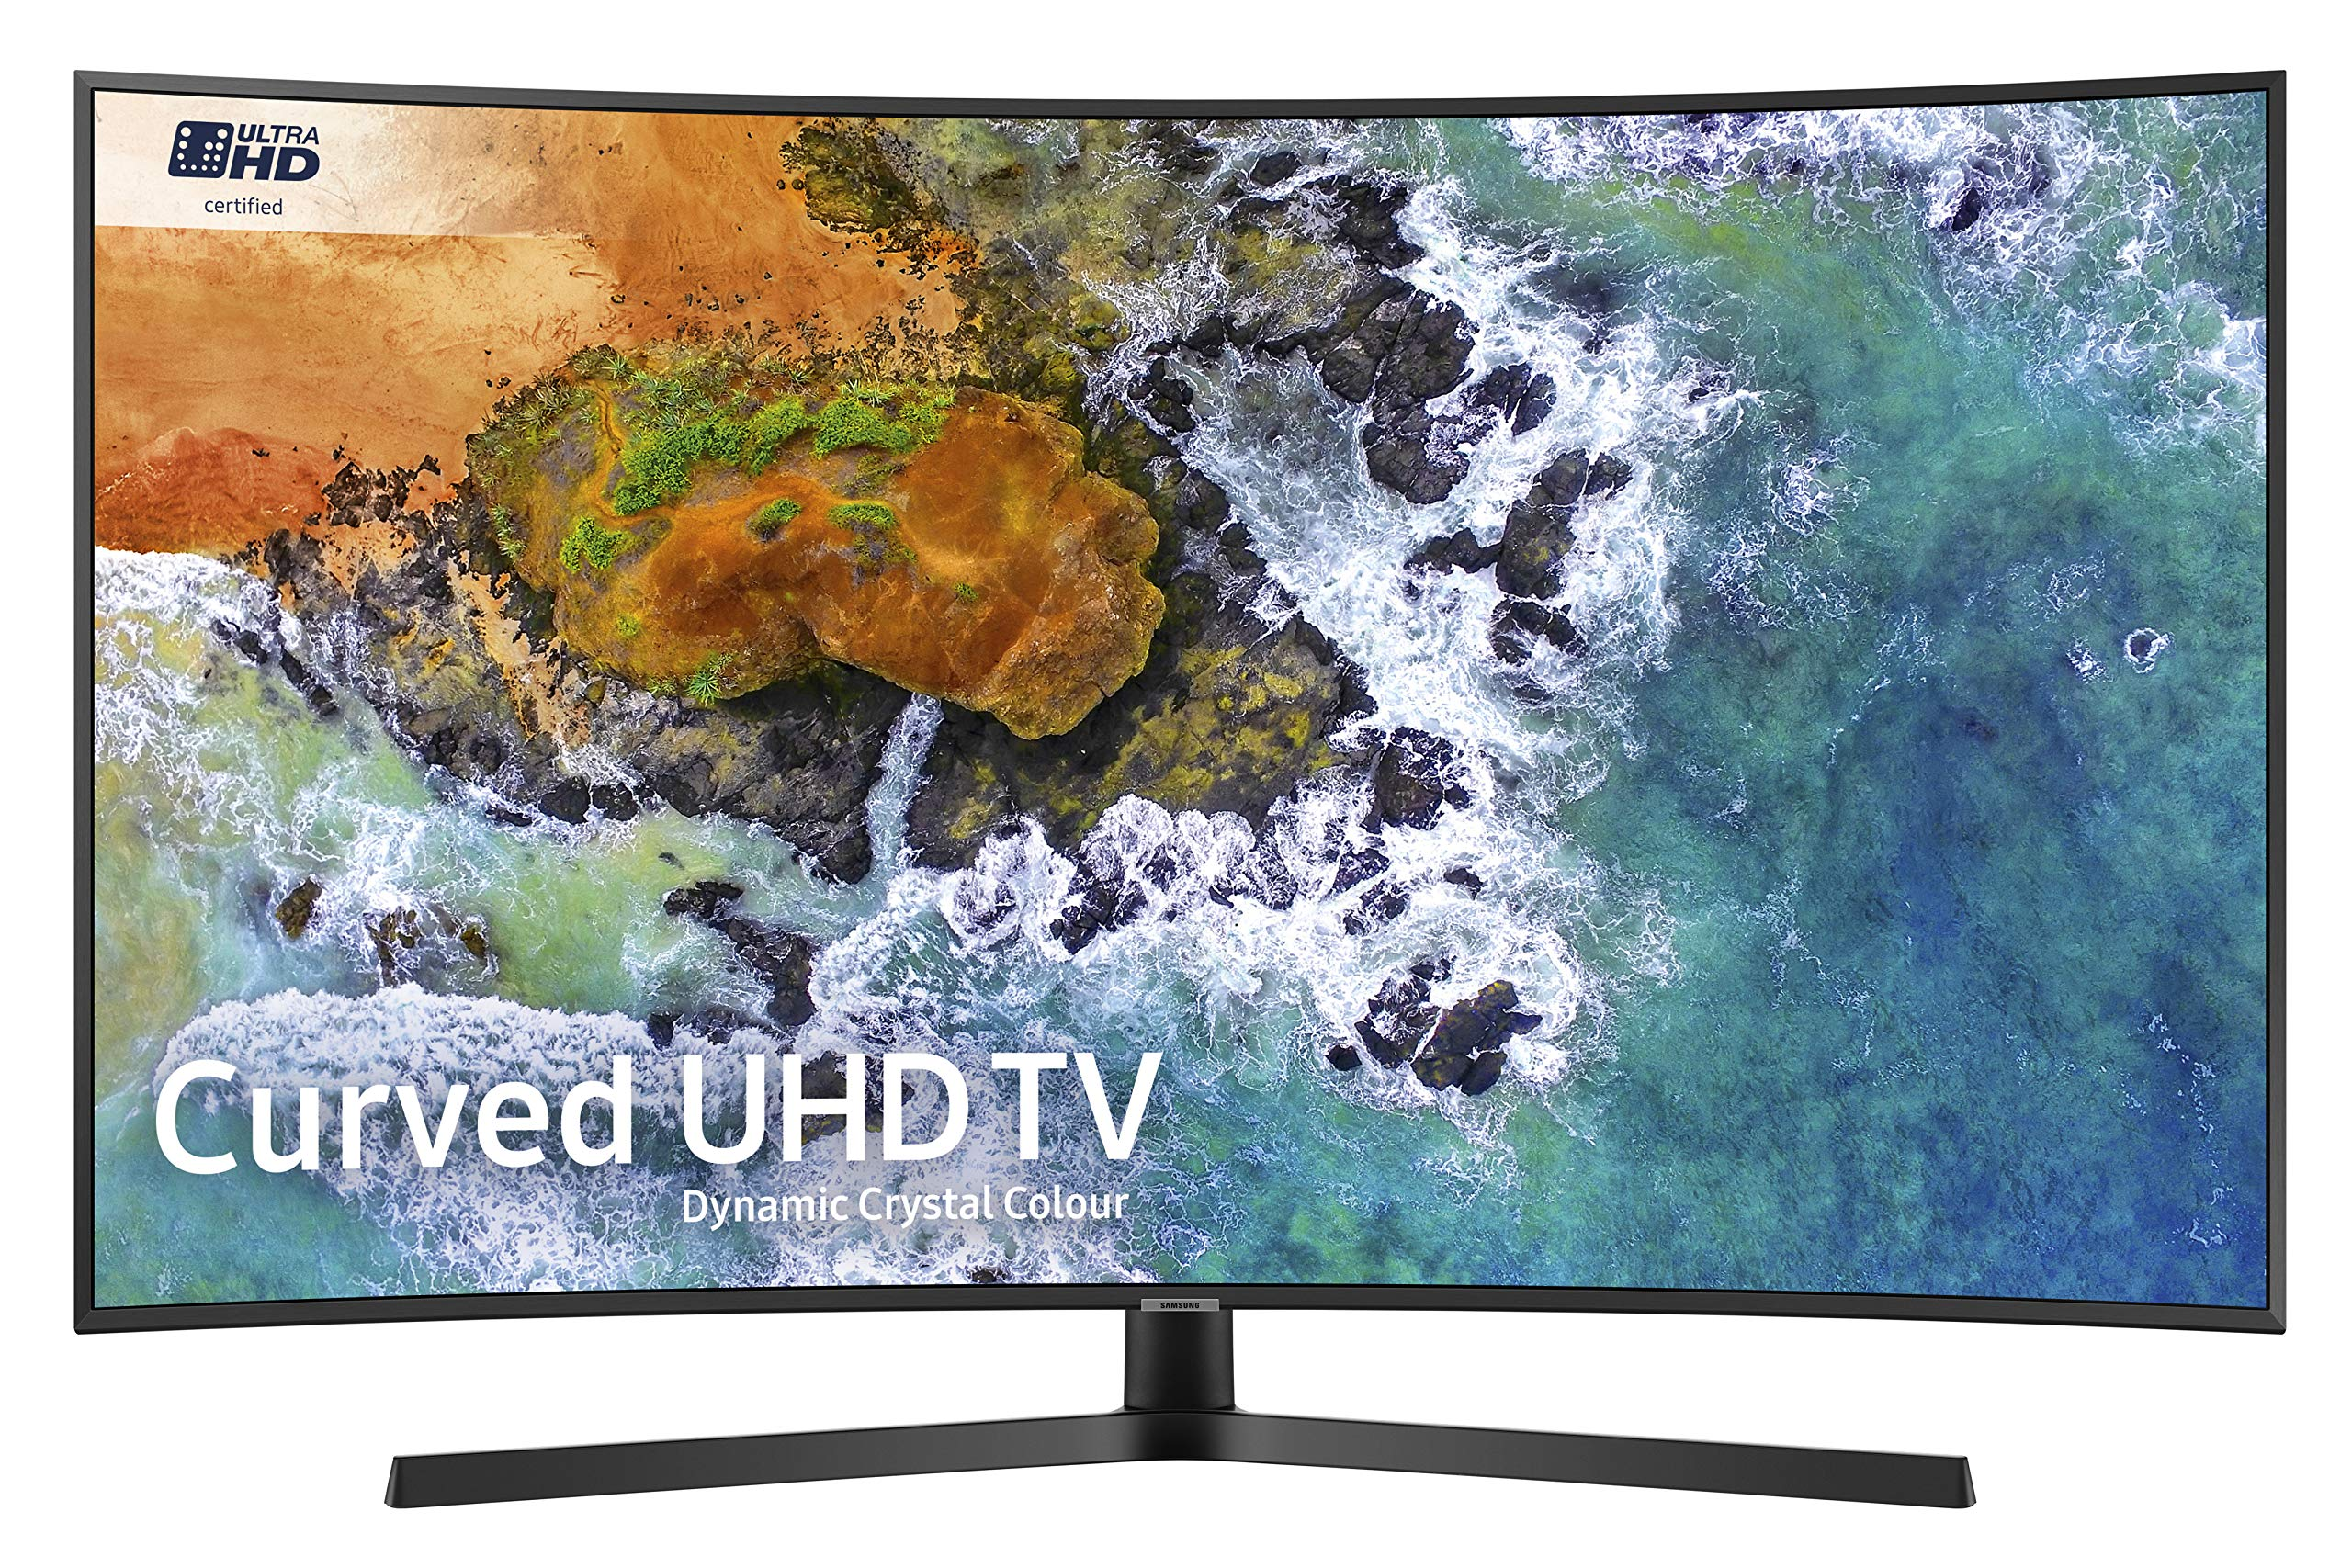 SAMSUNG Ue55nu7500 55 Pulgadas Curvado dinámico Cristal Color 4k Ultra HD HDR Certificado Smart TV: Amazon.es: Electrónica